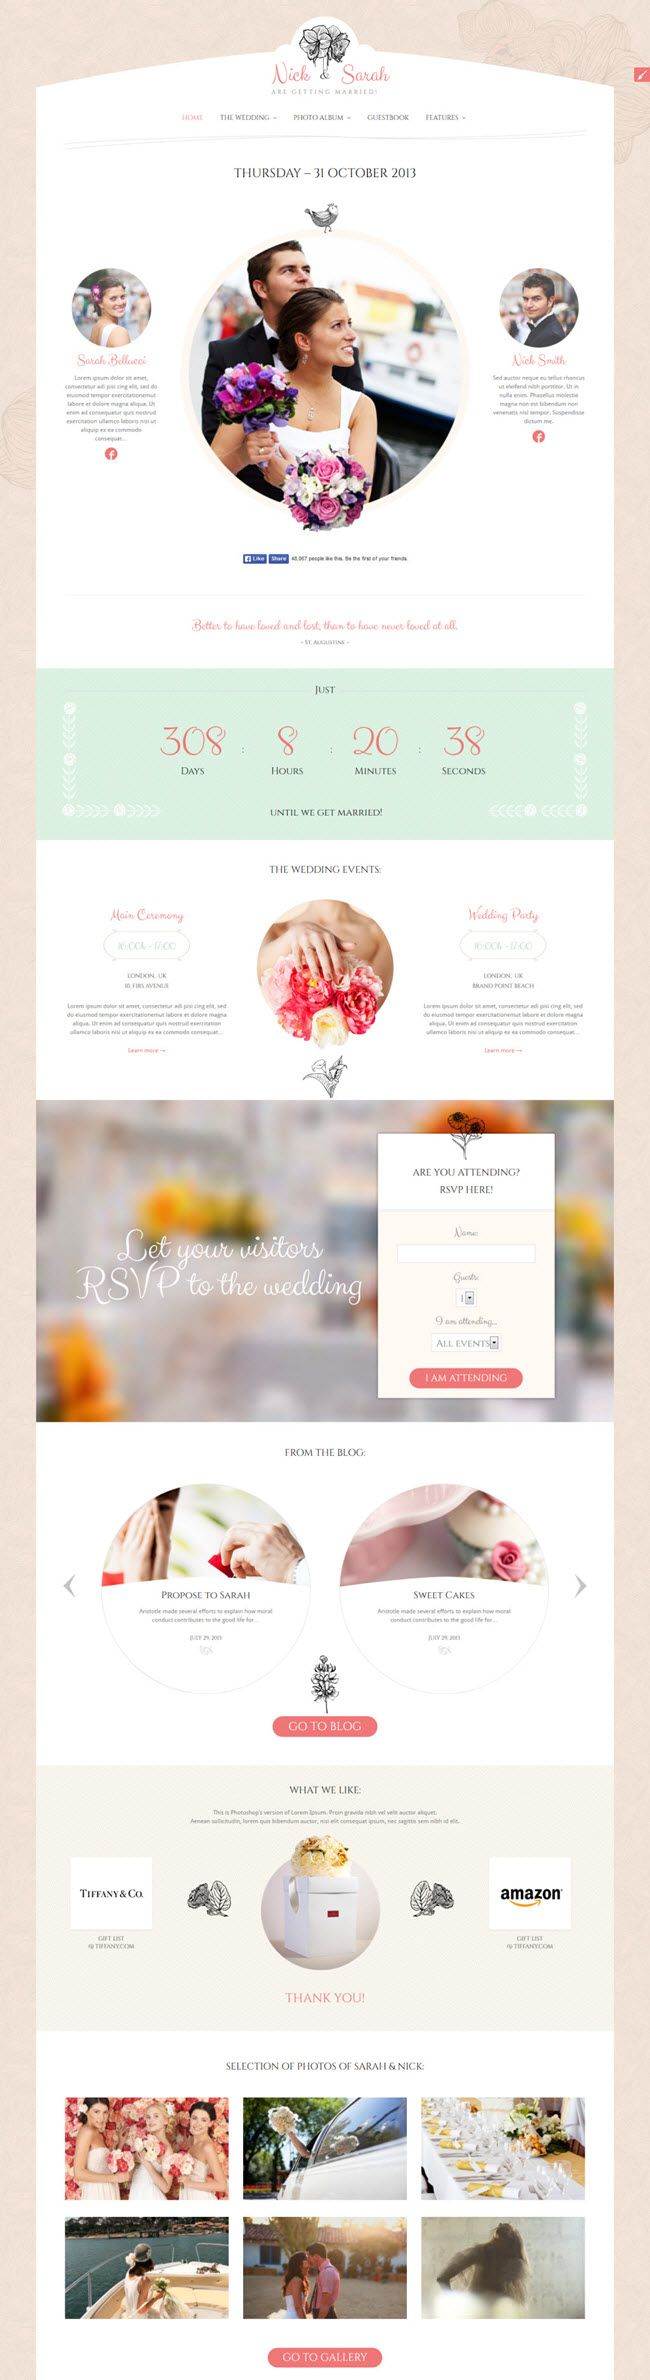 28 best Temas WP: Bodas images on Pinterest | Wedding, Wedding ...